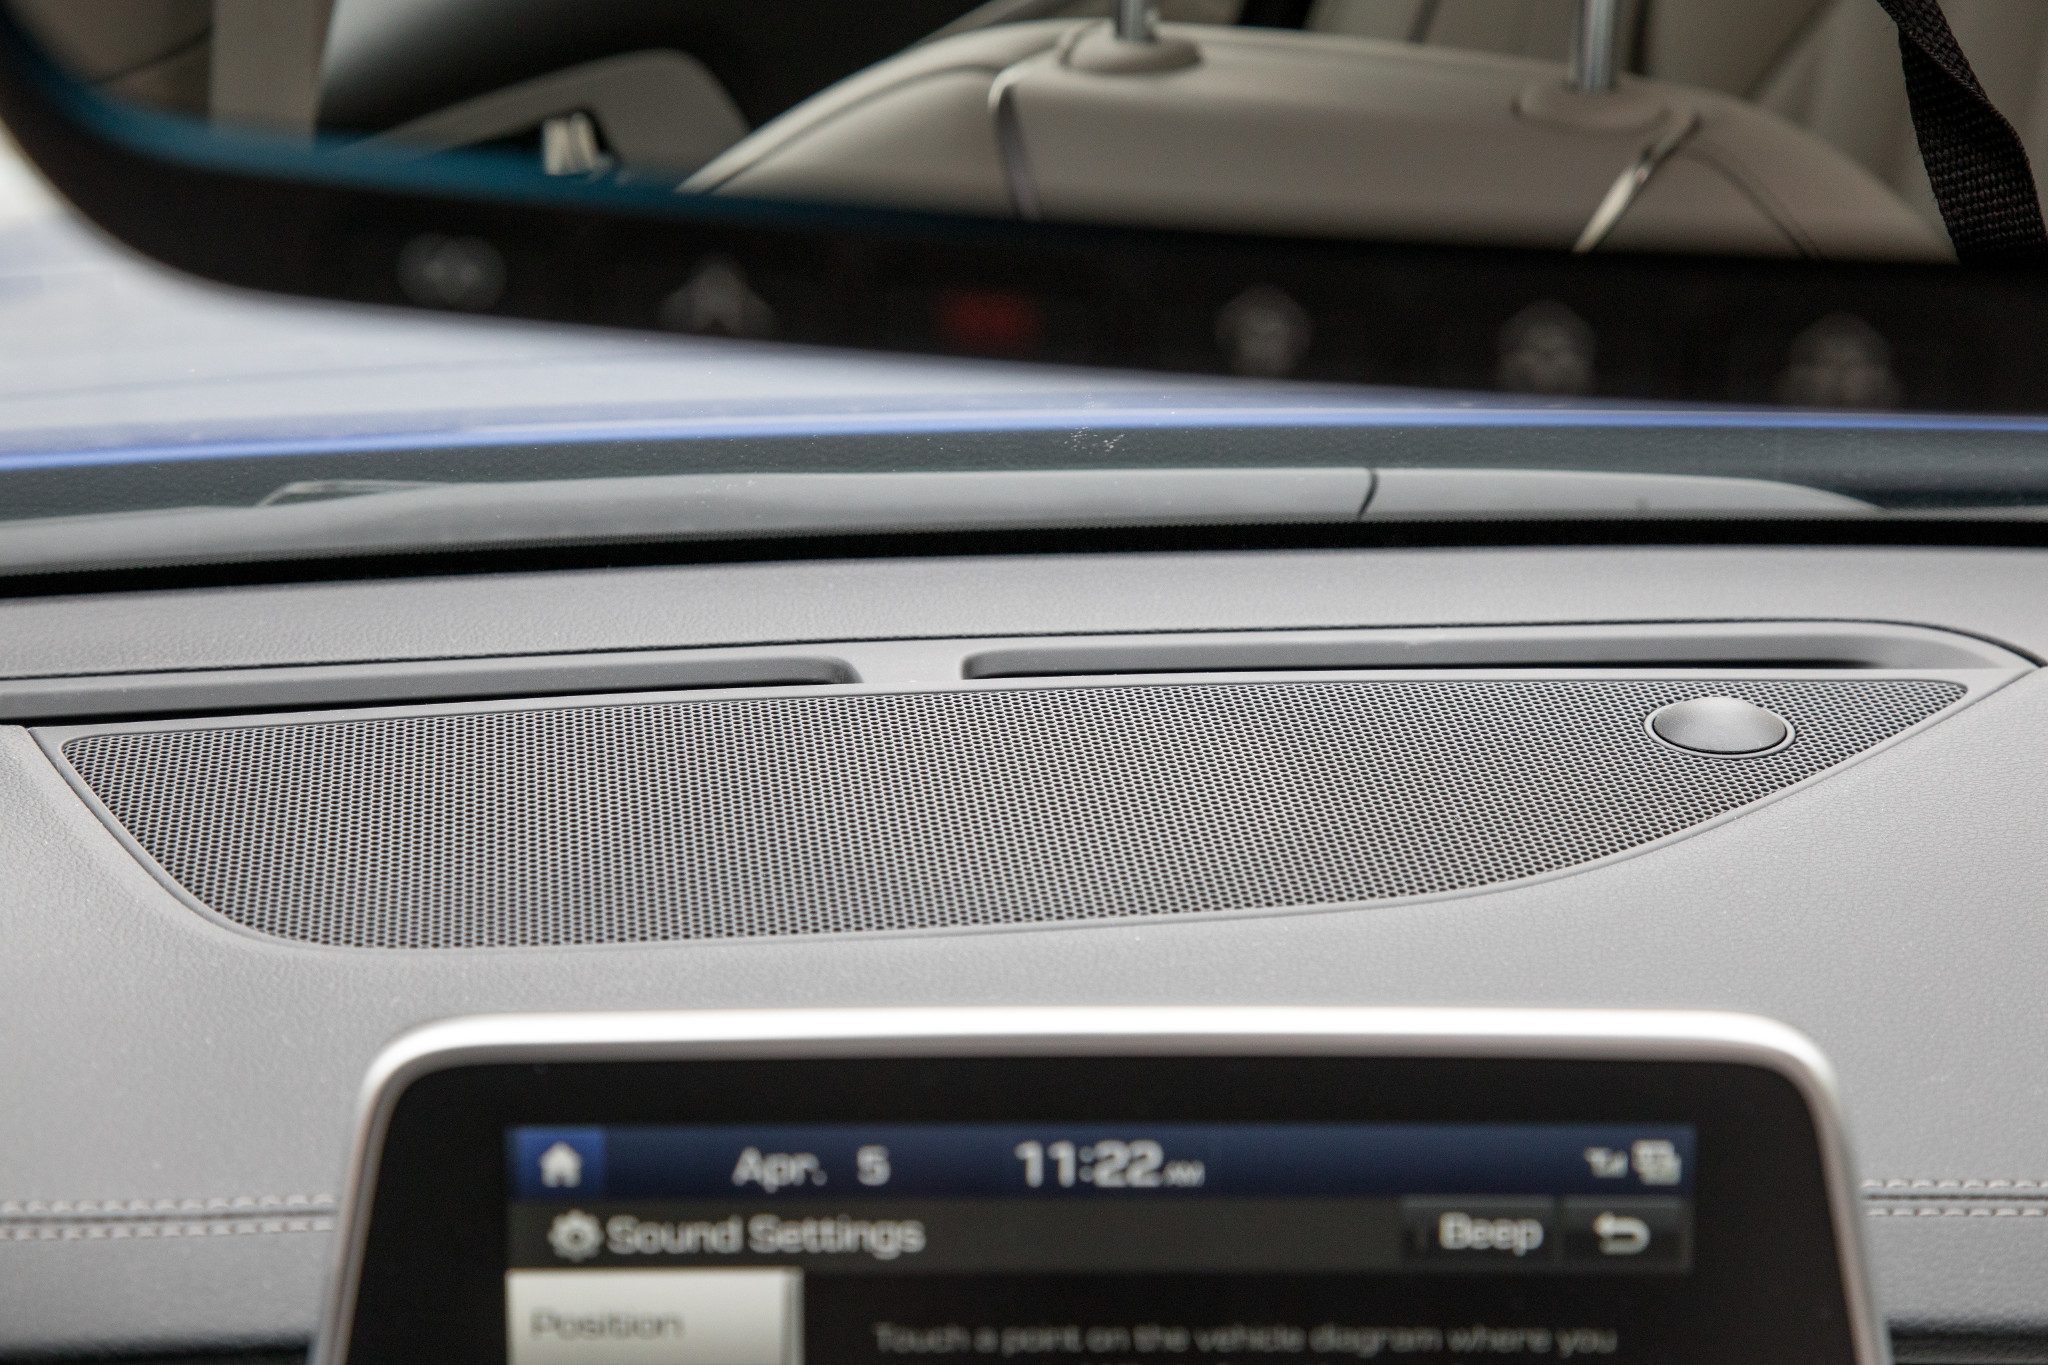 06-genesis-g70-2019-audio-system--dashboard--interior.jpg